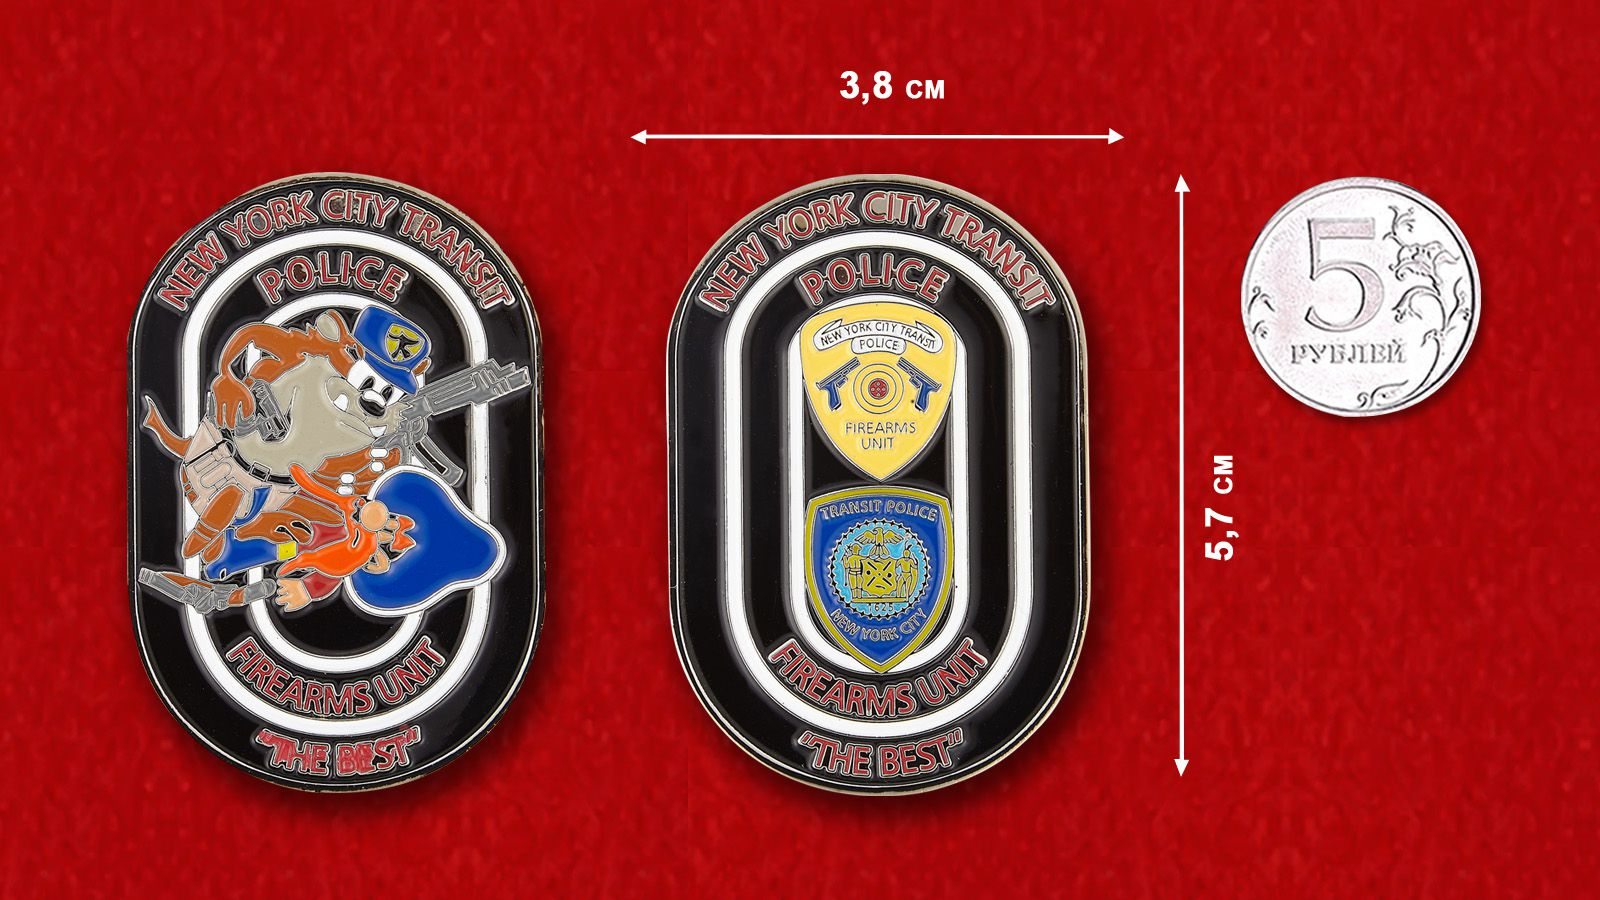 Challenge coin of the Department of Urban Transport New York City Police - comparative size